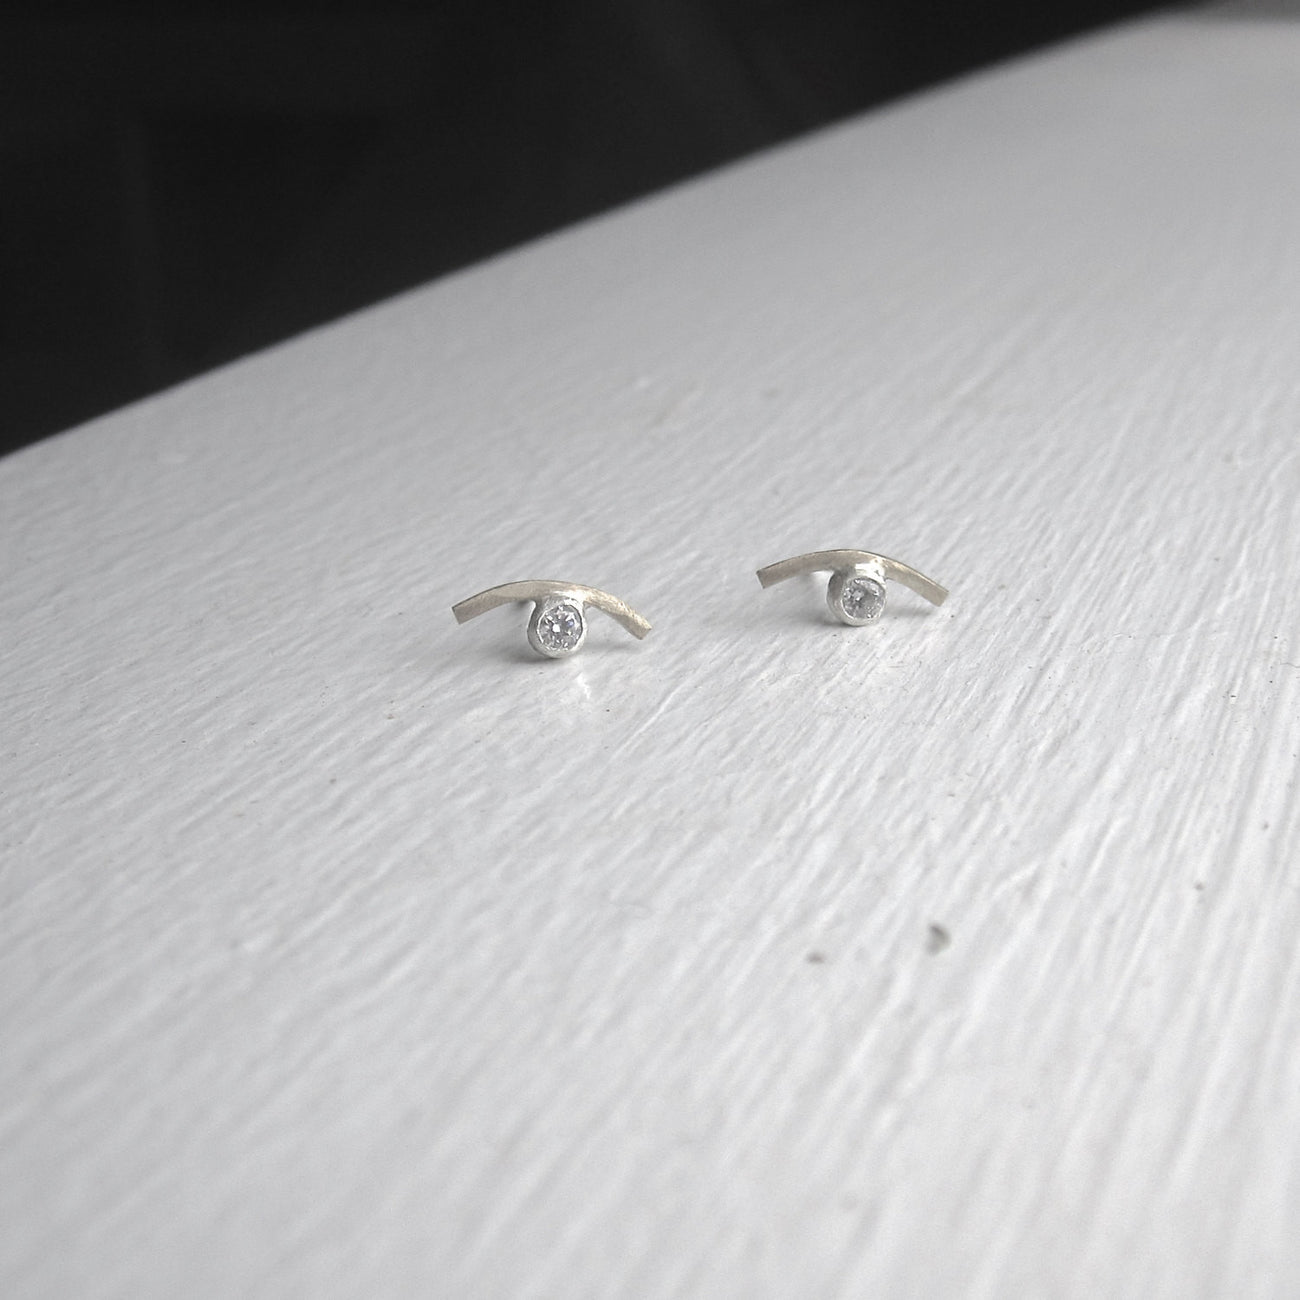 A Modern Classic - Hand-Made Sterling Silver Curved Studs With A Clear Stone - 0161 - Virginia Wynne Designs